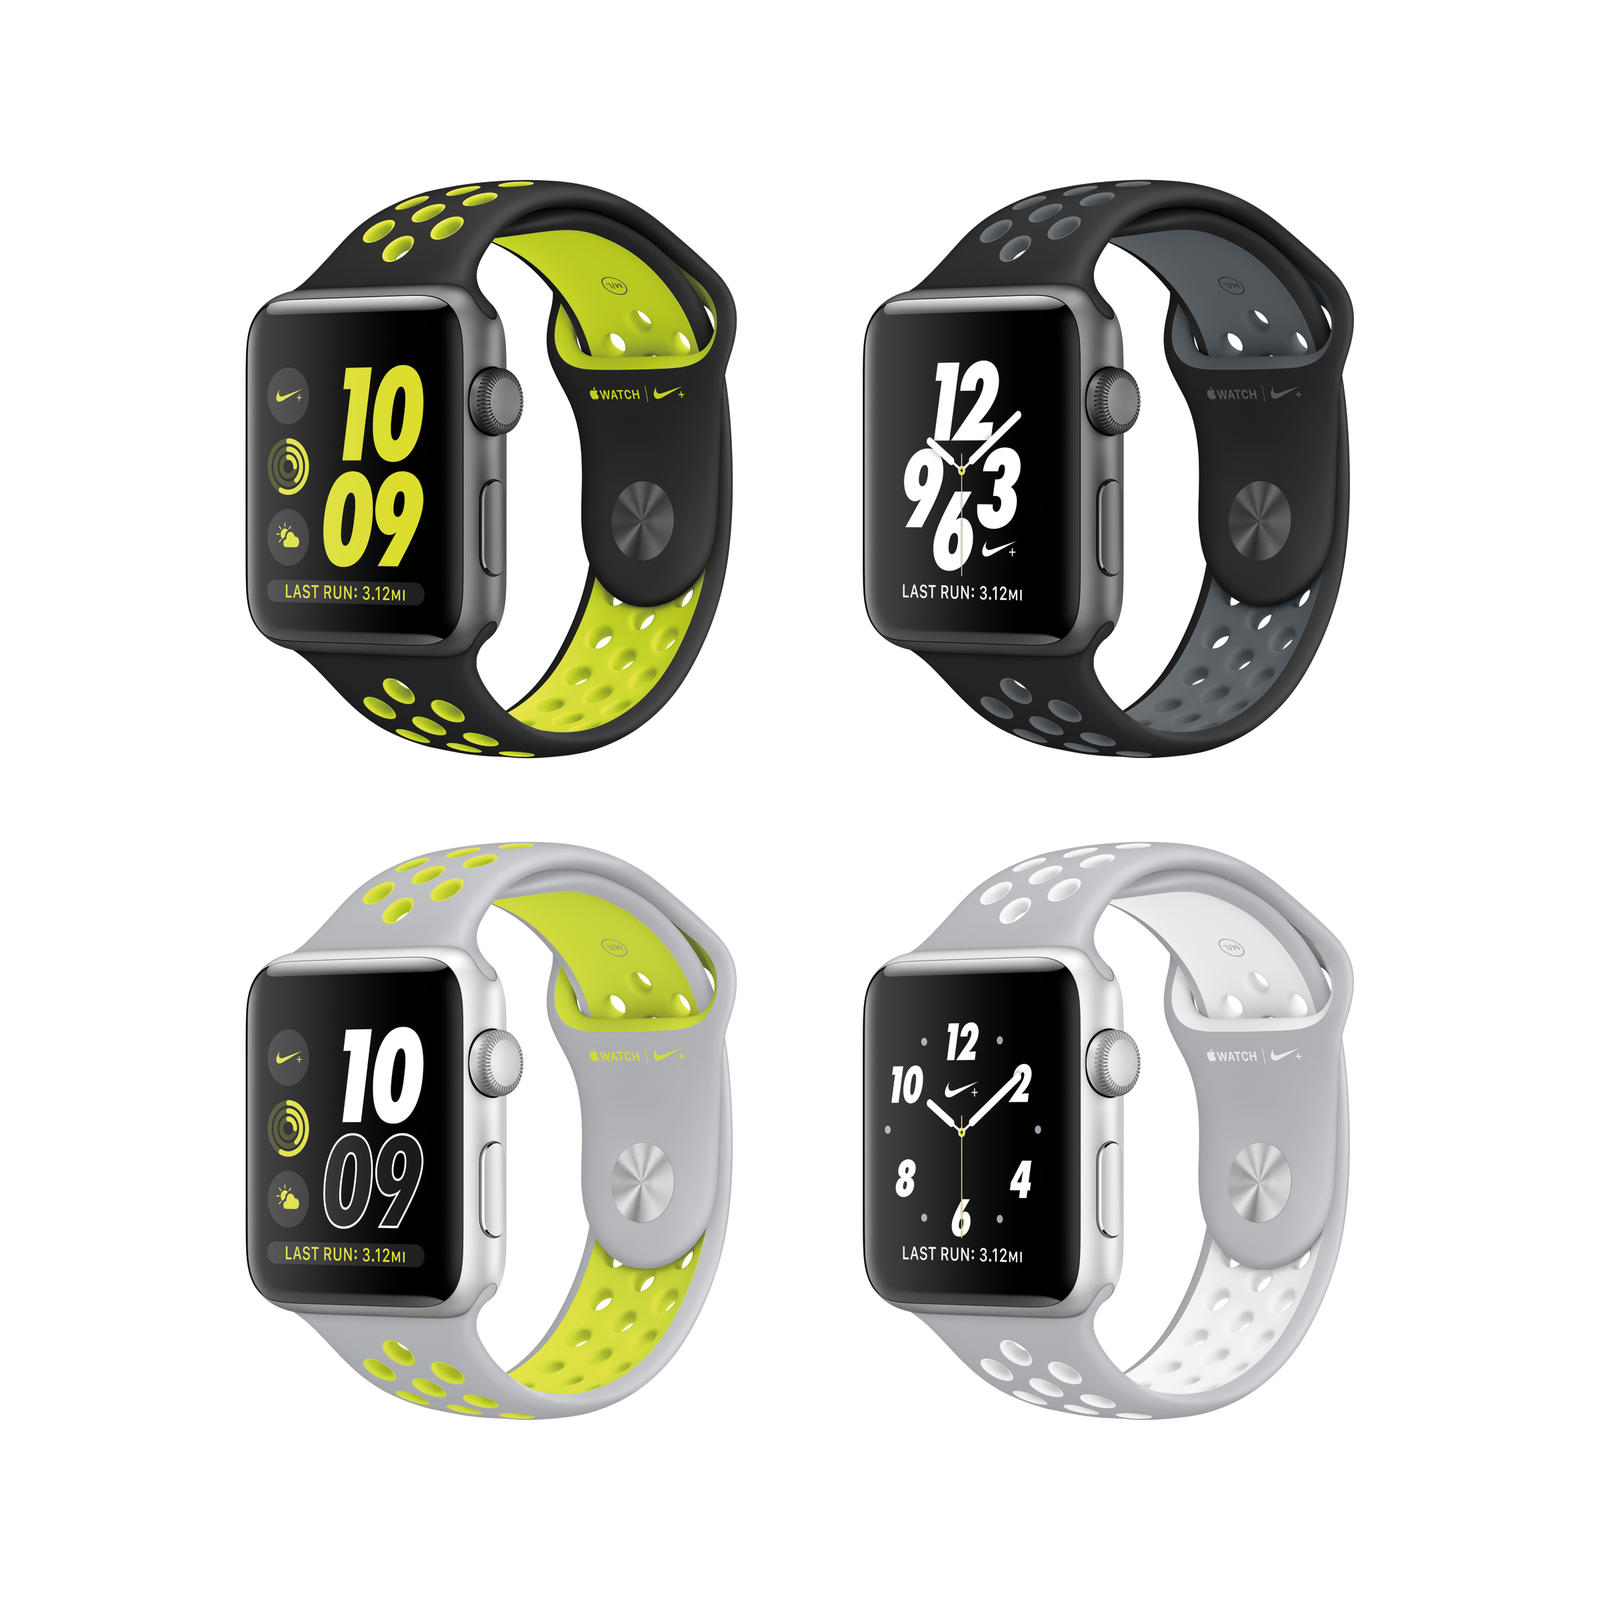 Nike-Plus-Apple-Watch-2016-Clock_native_1600